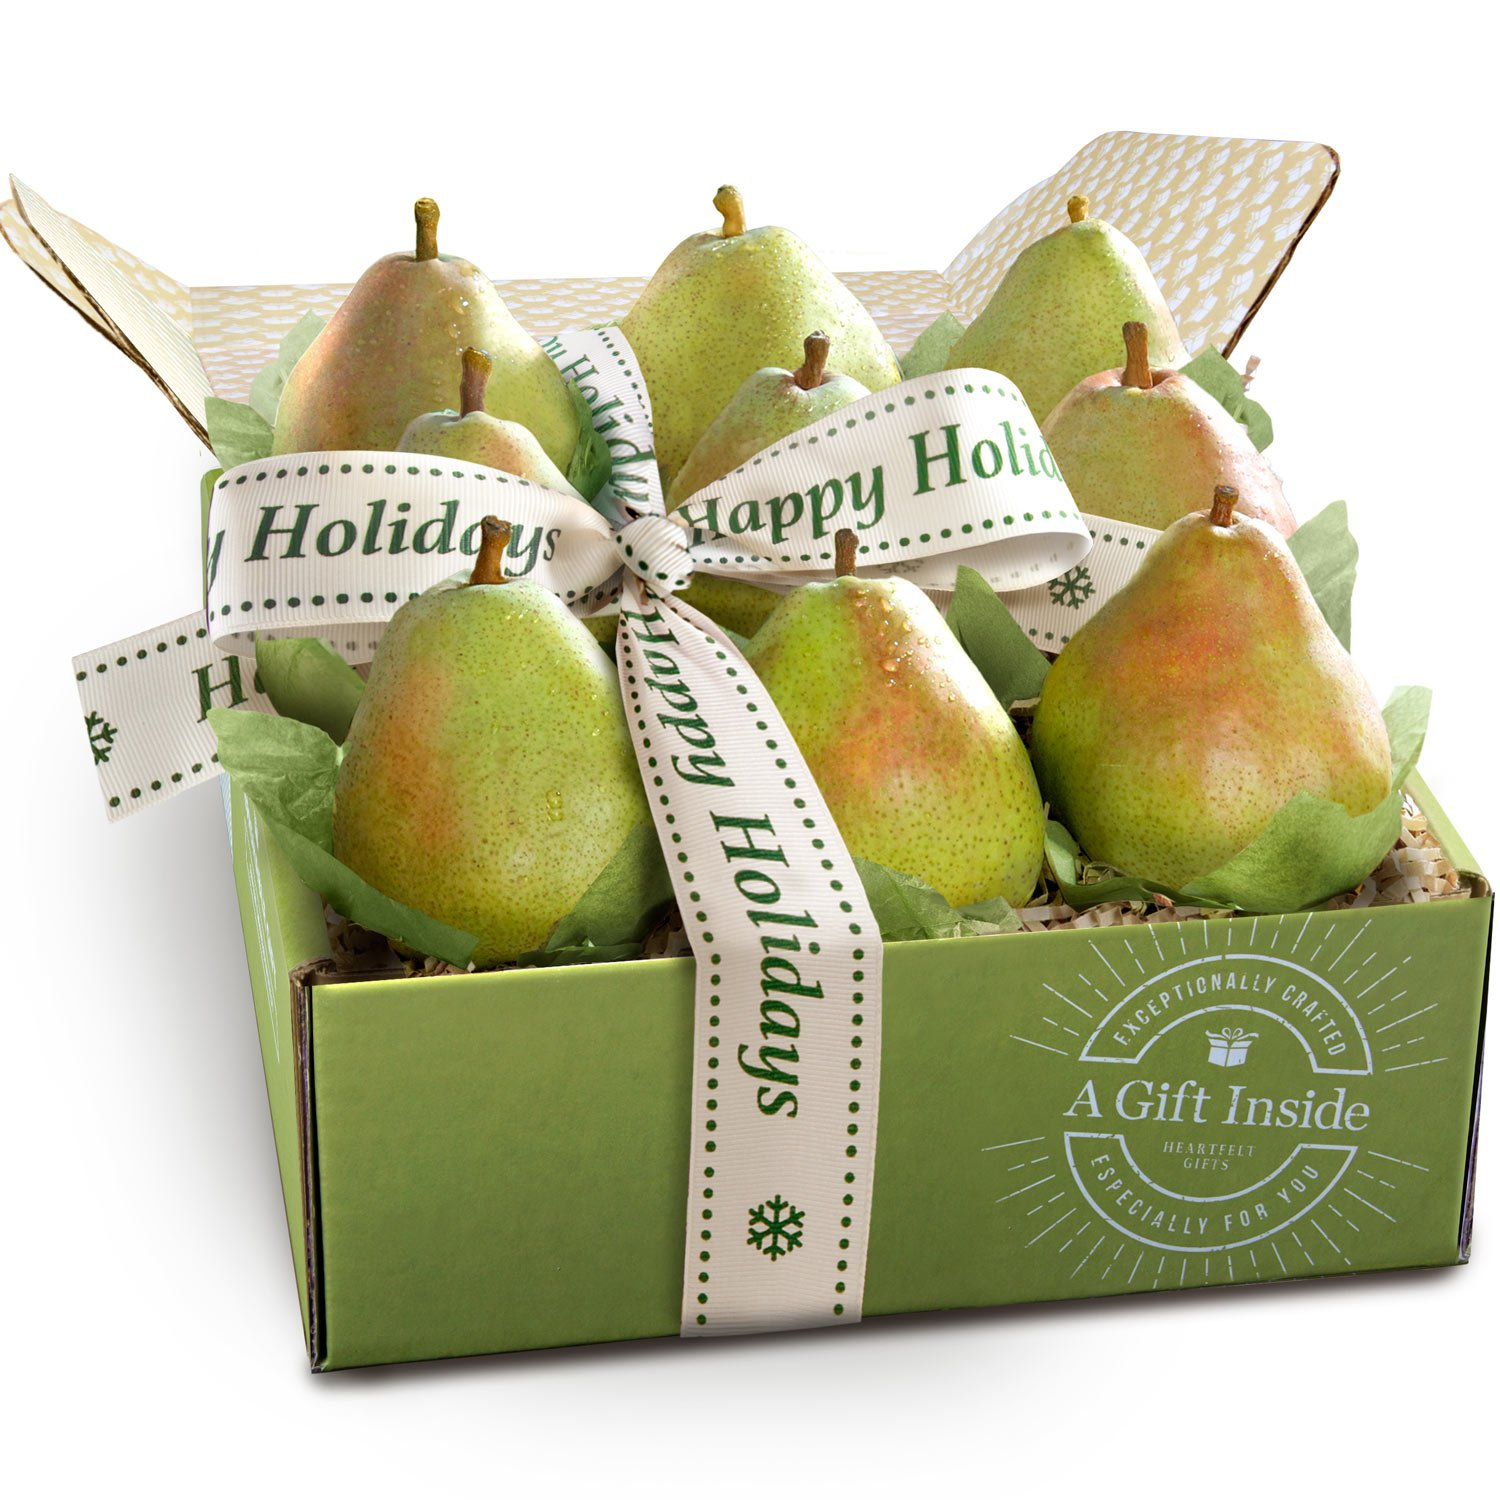 California Golden State Pears Gift Set